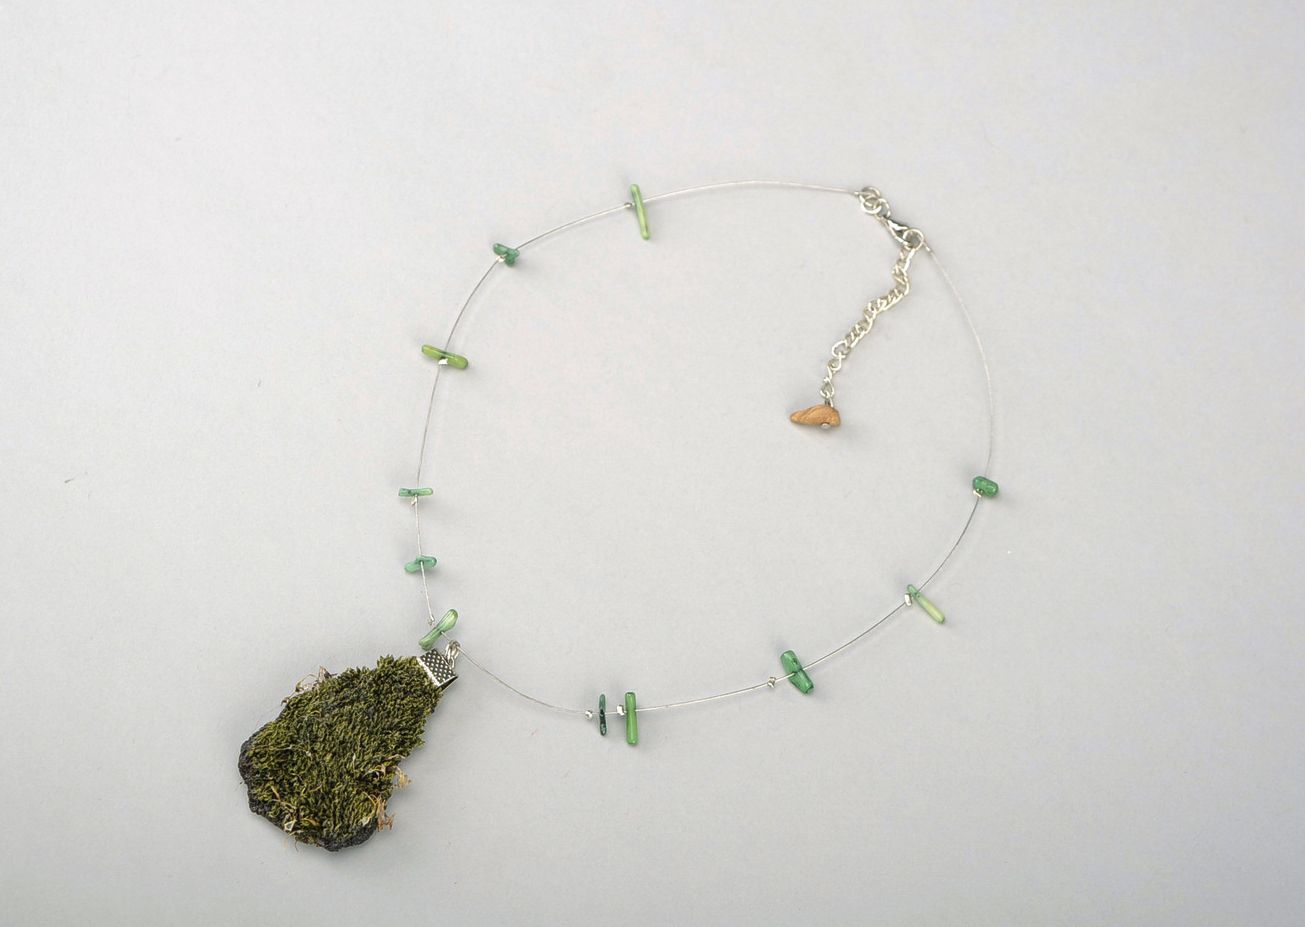 Pendant made of natural moss photo 3